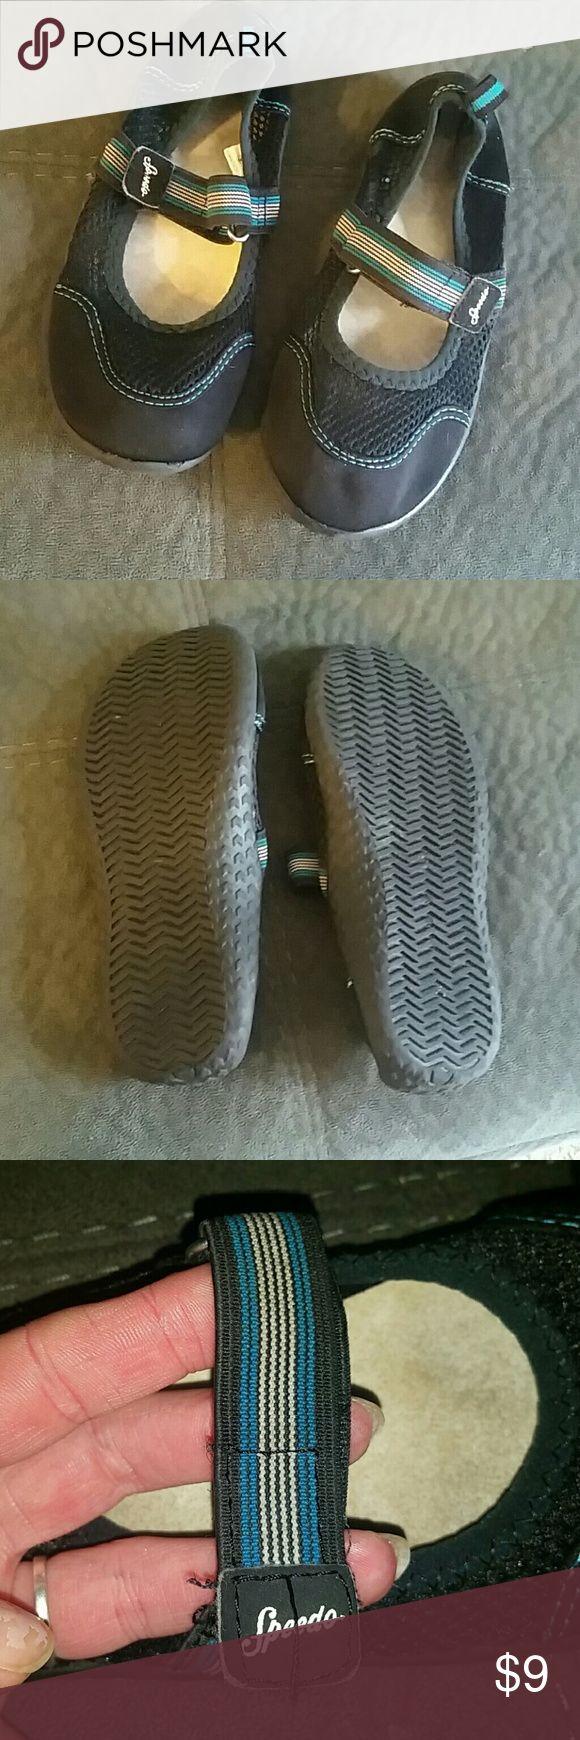 **EUC** Girls Speedo water shoes These are in great condition and worn maybe 5 times total at water parks! These were NOT used in a lake or in the ocean! No odors of any kind! My daughter said these were very comfy! Price is firm in Las bundled Speedo Shoes Water Shoes